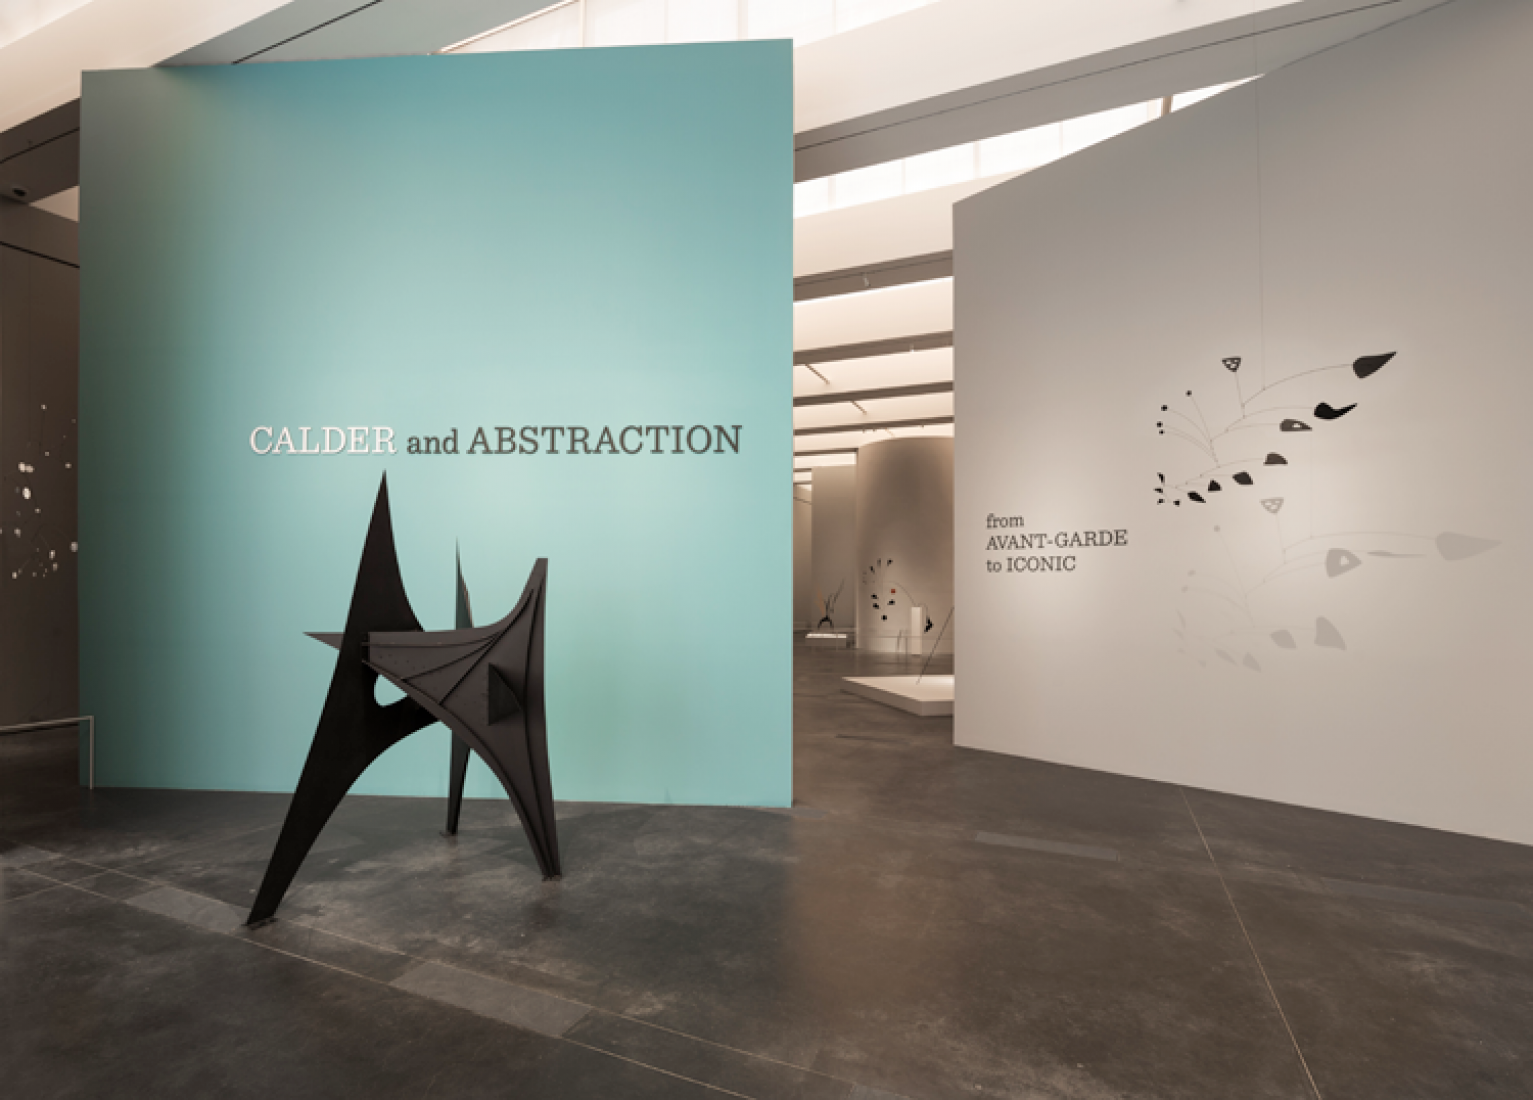 Calder and Abstraction: From Avant-Garde to Iconic, Los Angeles County Museum of Art, November 24, 2013-July 27, 2014, © Calder Foundation, New York, Artists Rights Society (ARS), NY. Photography © Fredrik Nilsen